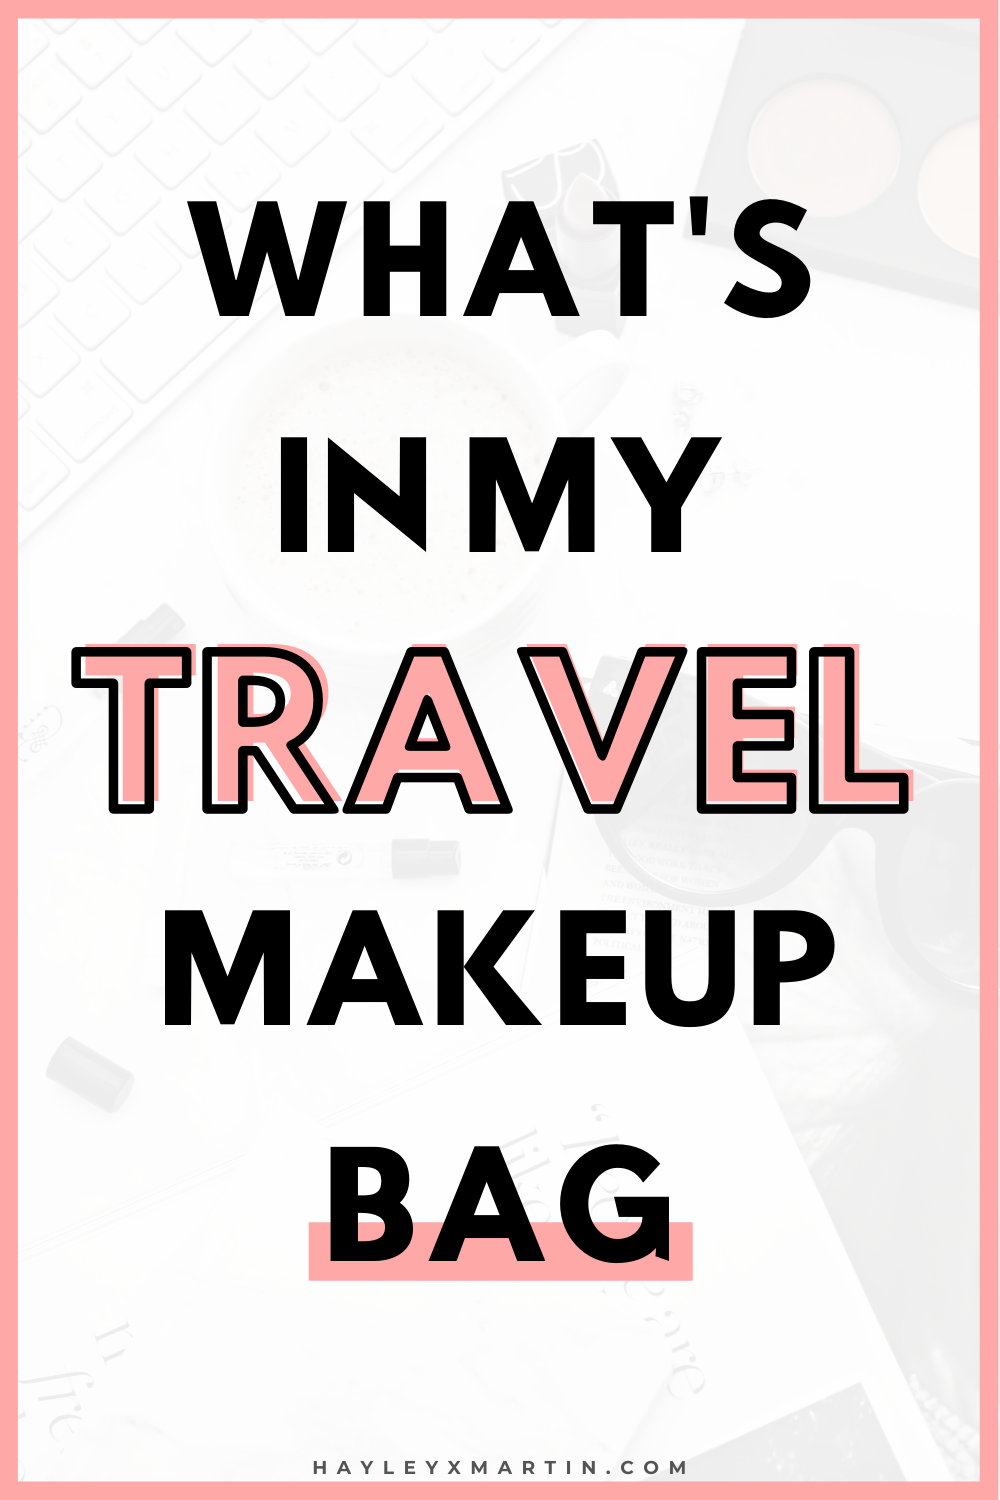 WHAT'S IN MY TRAVEL MAKEUP BAG? | HAYLEYXMARTIN | TREK AMERICA TRAVEL | SOLO GROUP TRAVEL